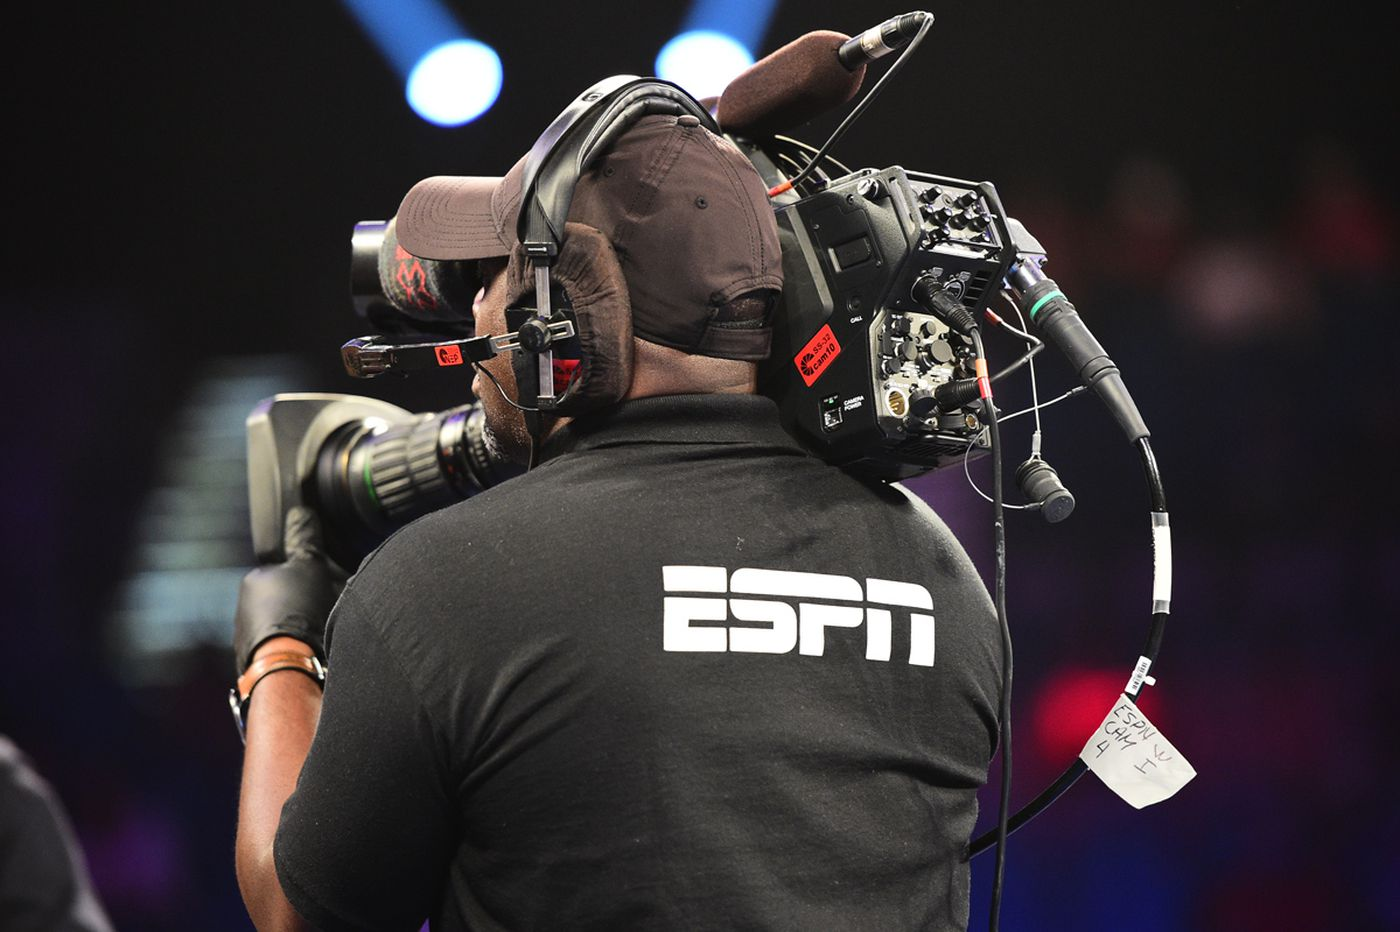 ESPN will be all over Philadelphia this weekend covering the Phillies, UFC and boxing